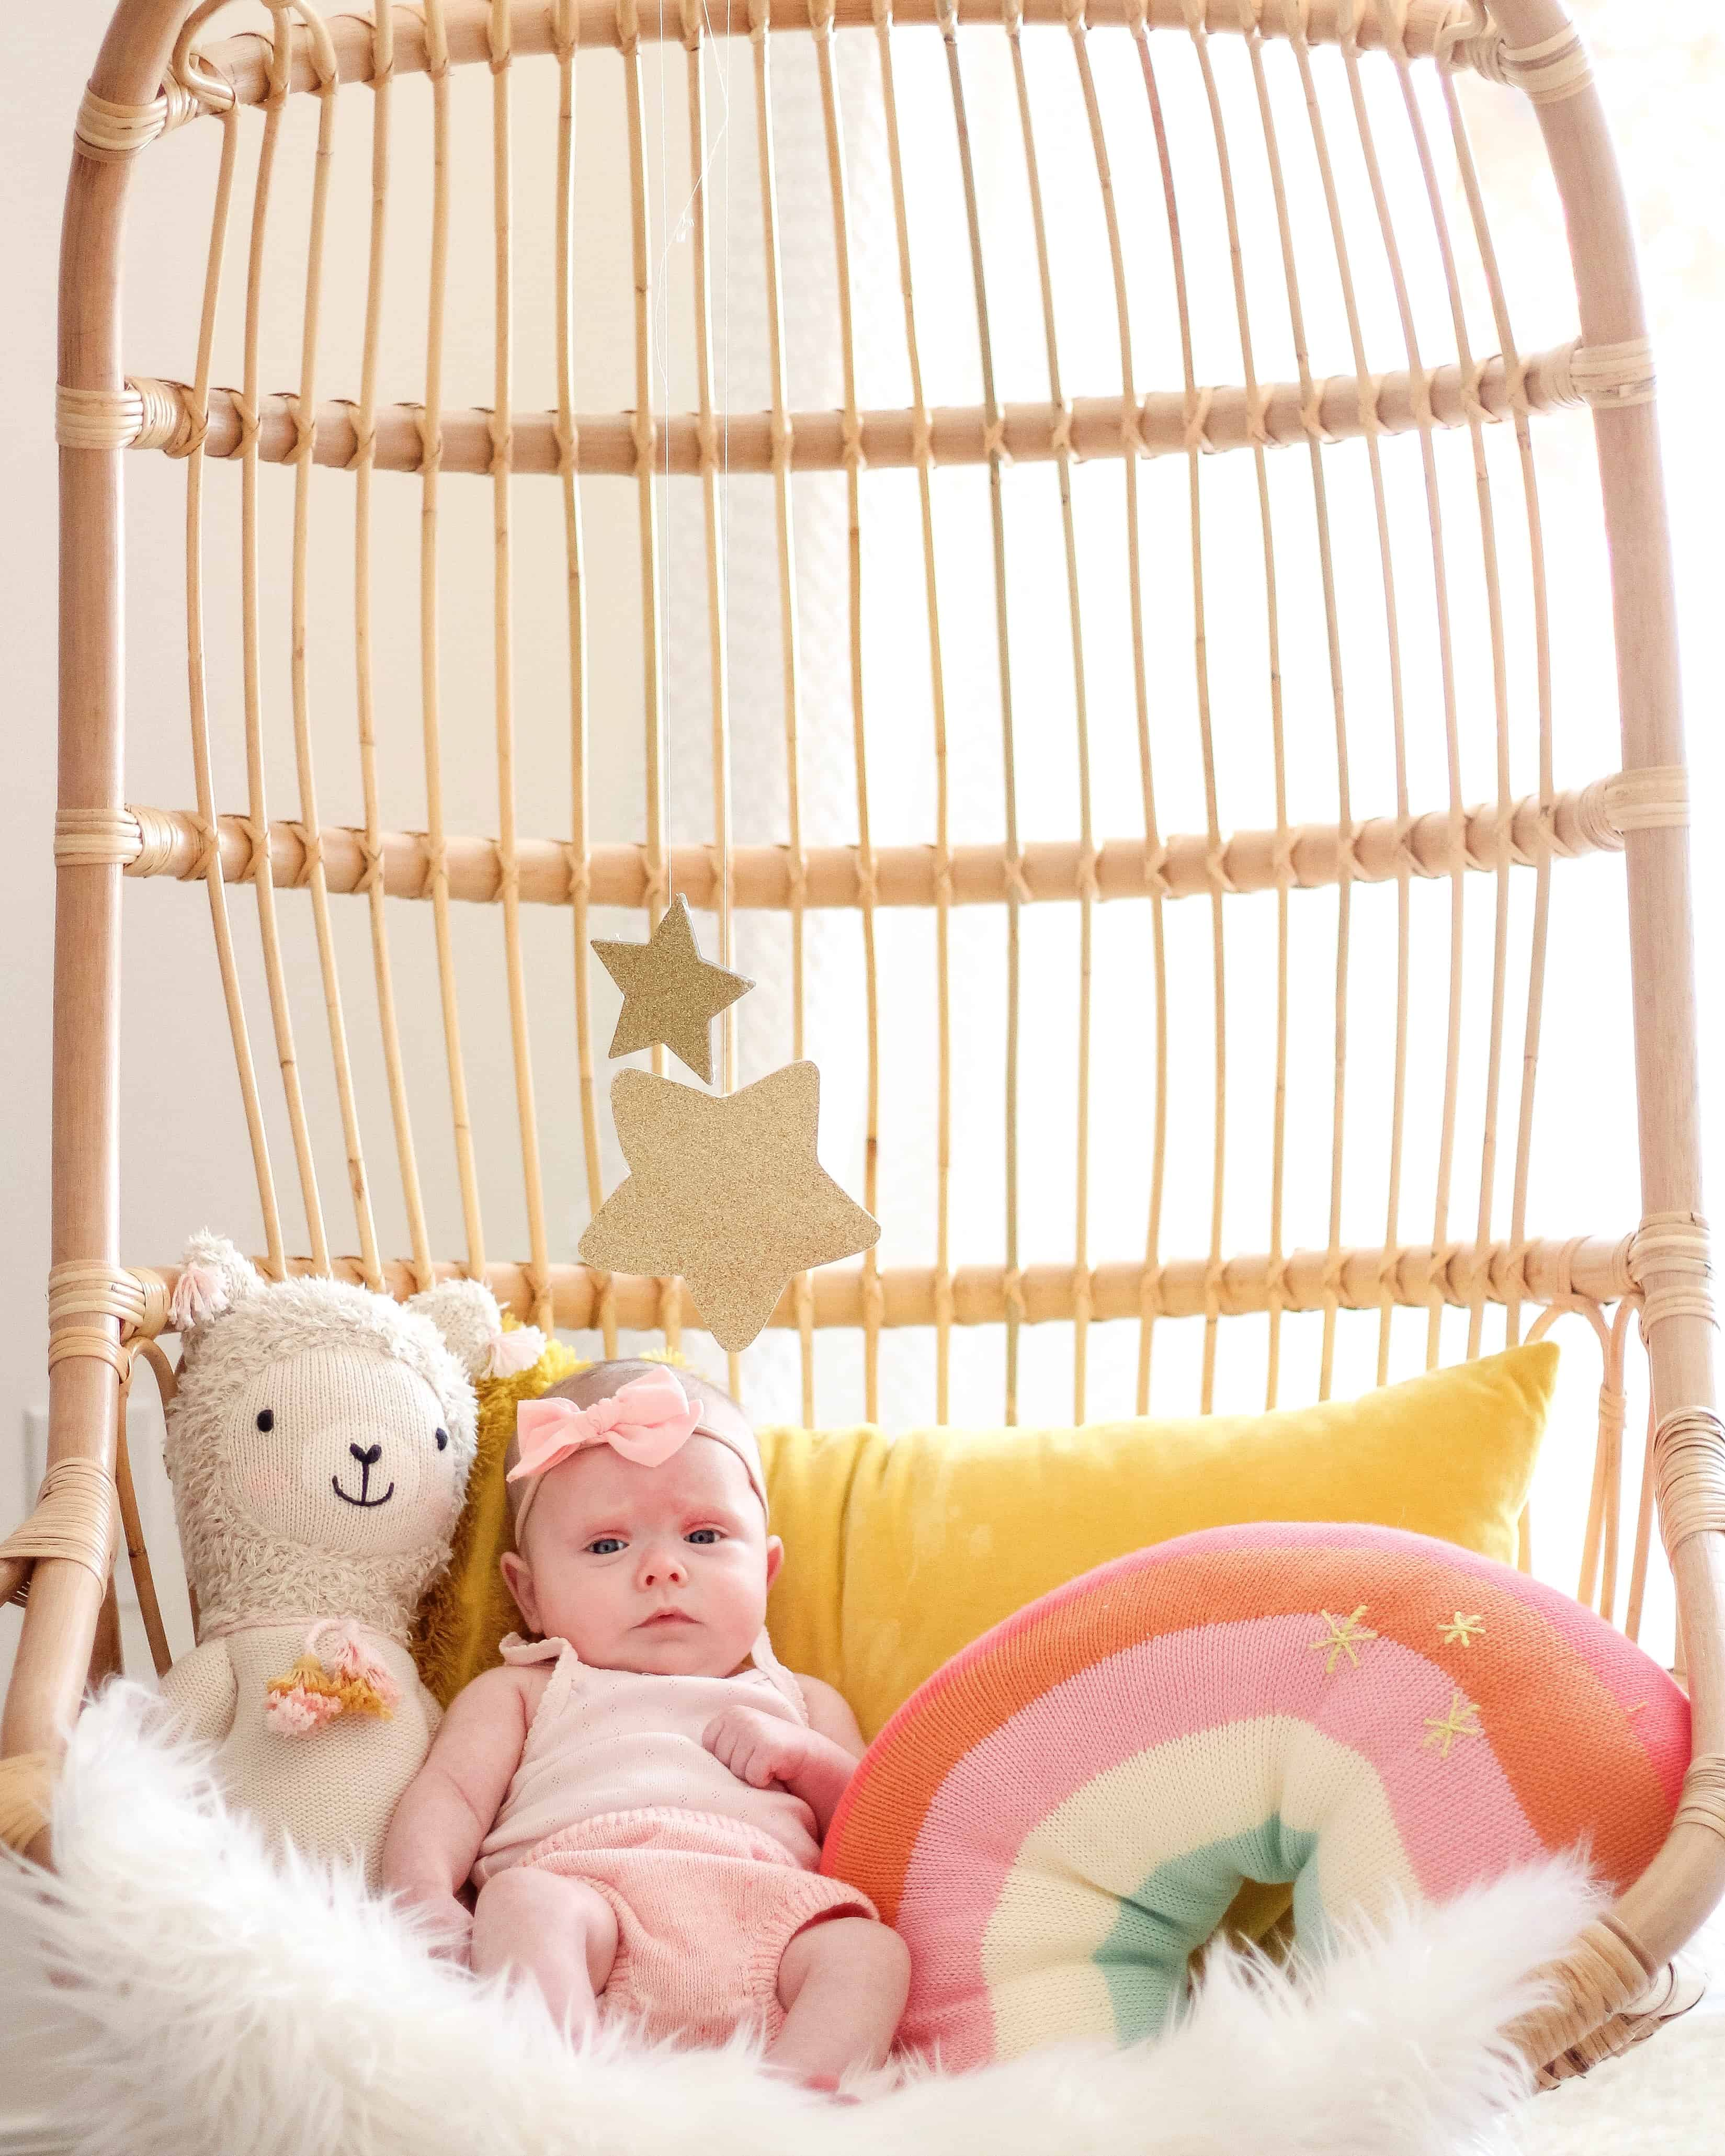 2 month old baby in Serena and lily chair